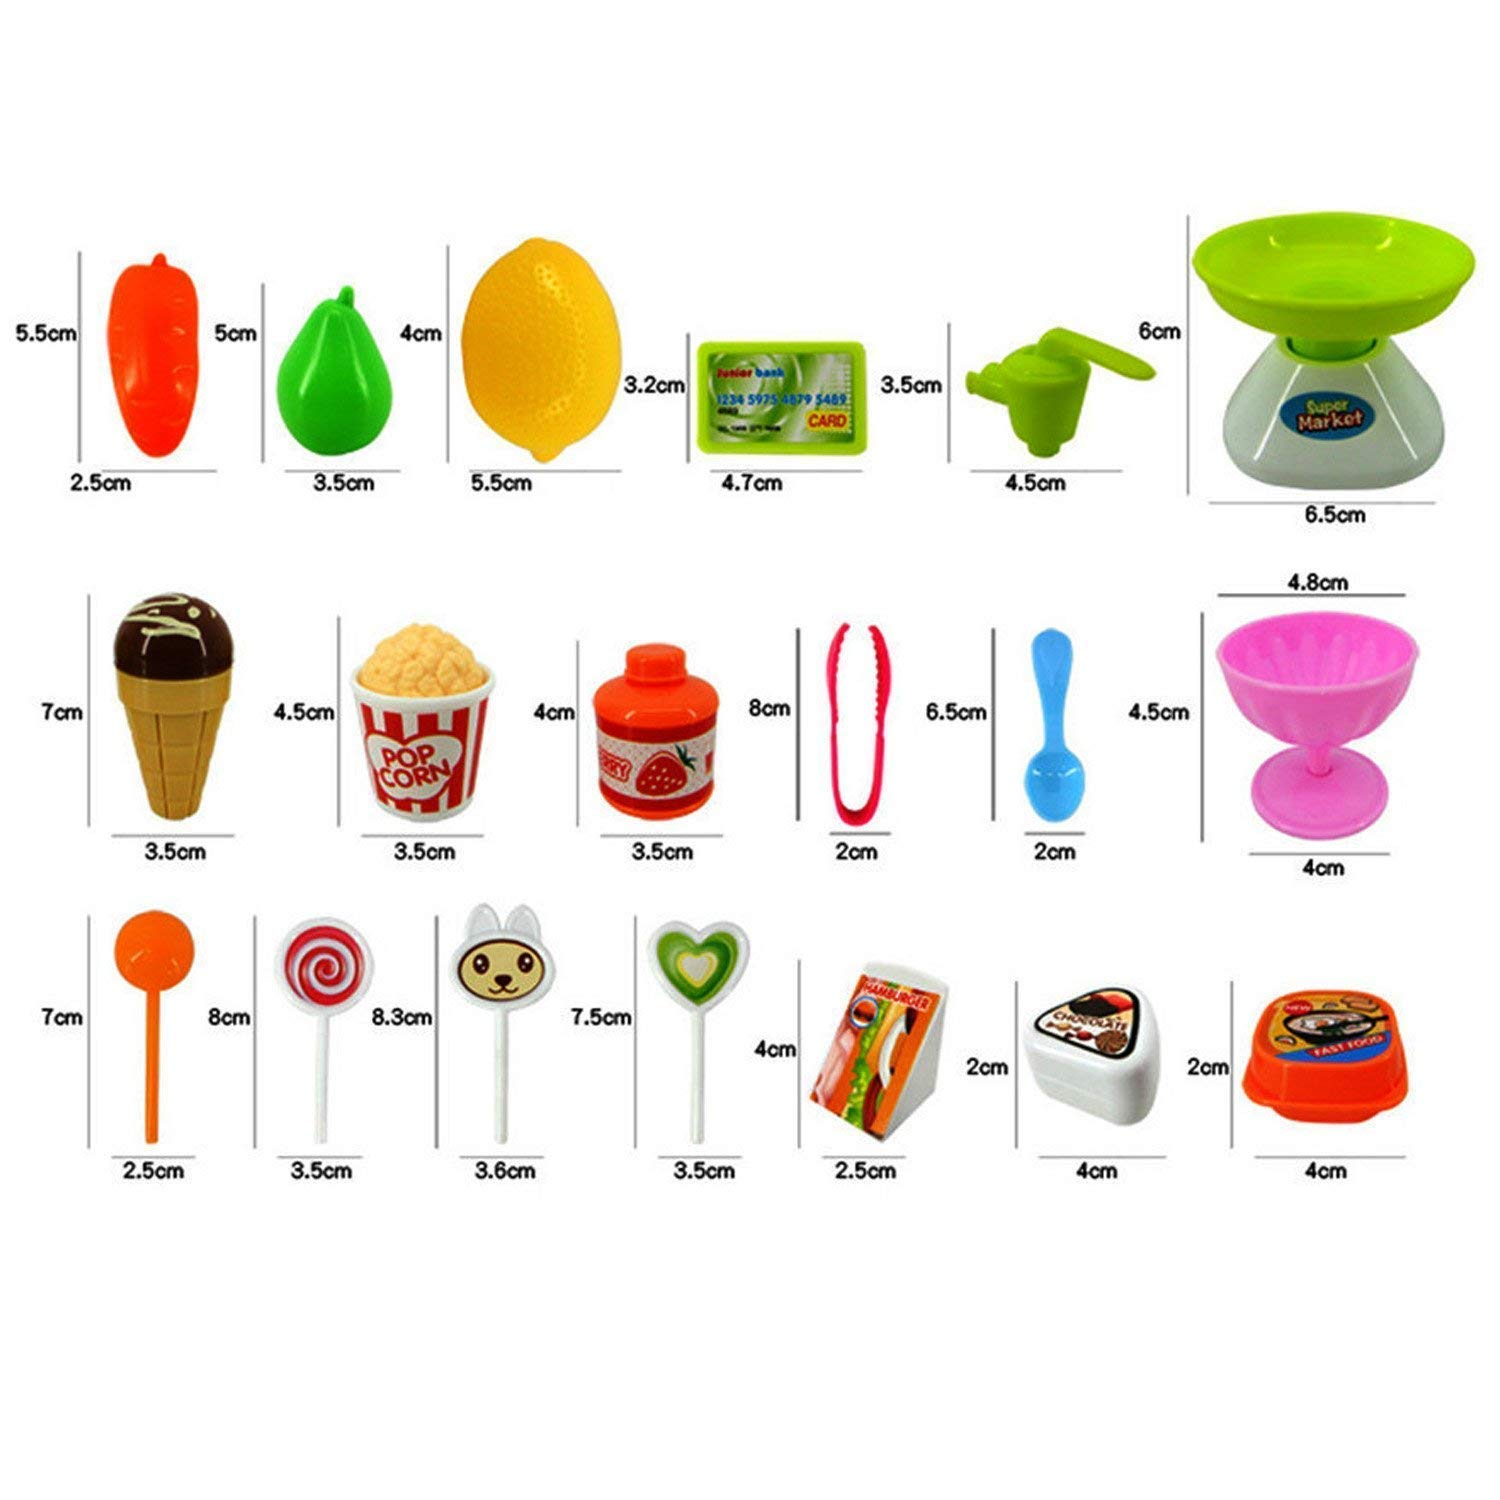 Buy Magnifico Sweet Super Mini Market Kitchen Set Toy For Kids 34 Four Kids39 Websites About Electricity Practice And Fun Piece Pink Online At Low Prices In India